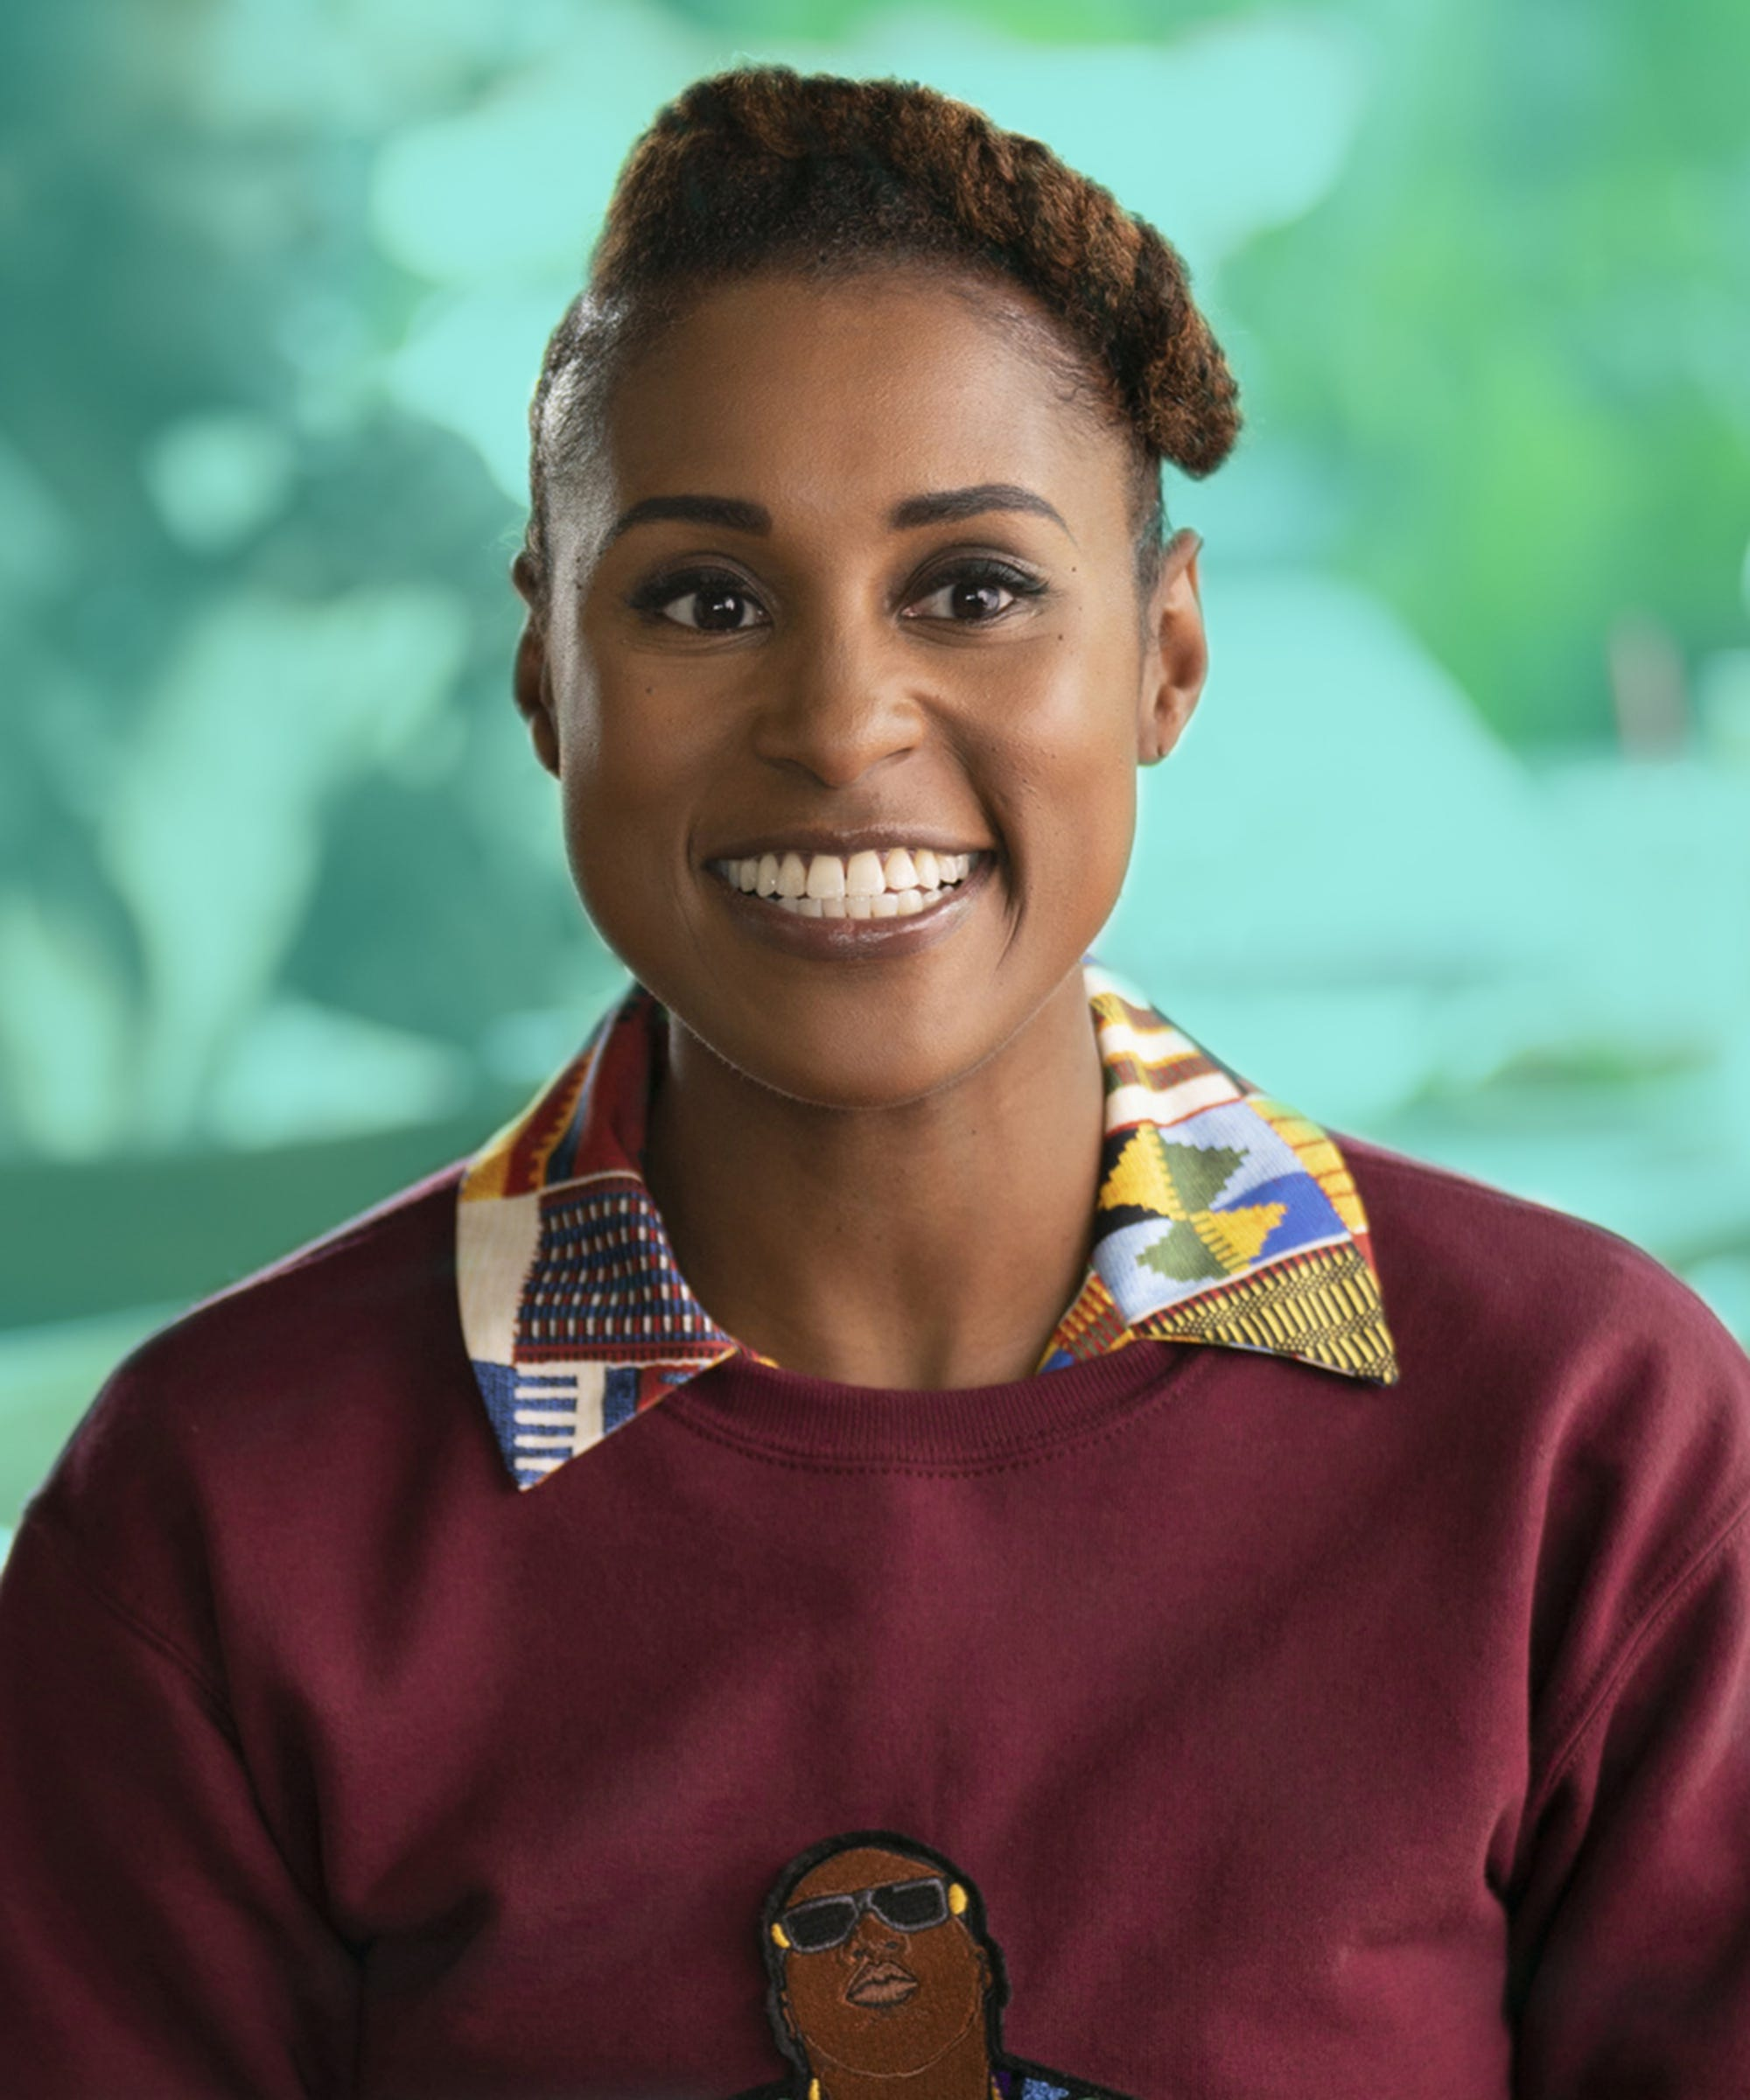 The Complete Guide To Being An Issa On HBO's Insecure